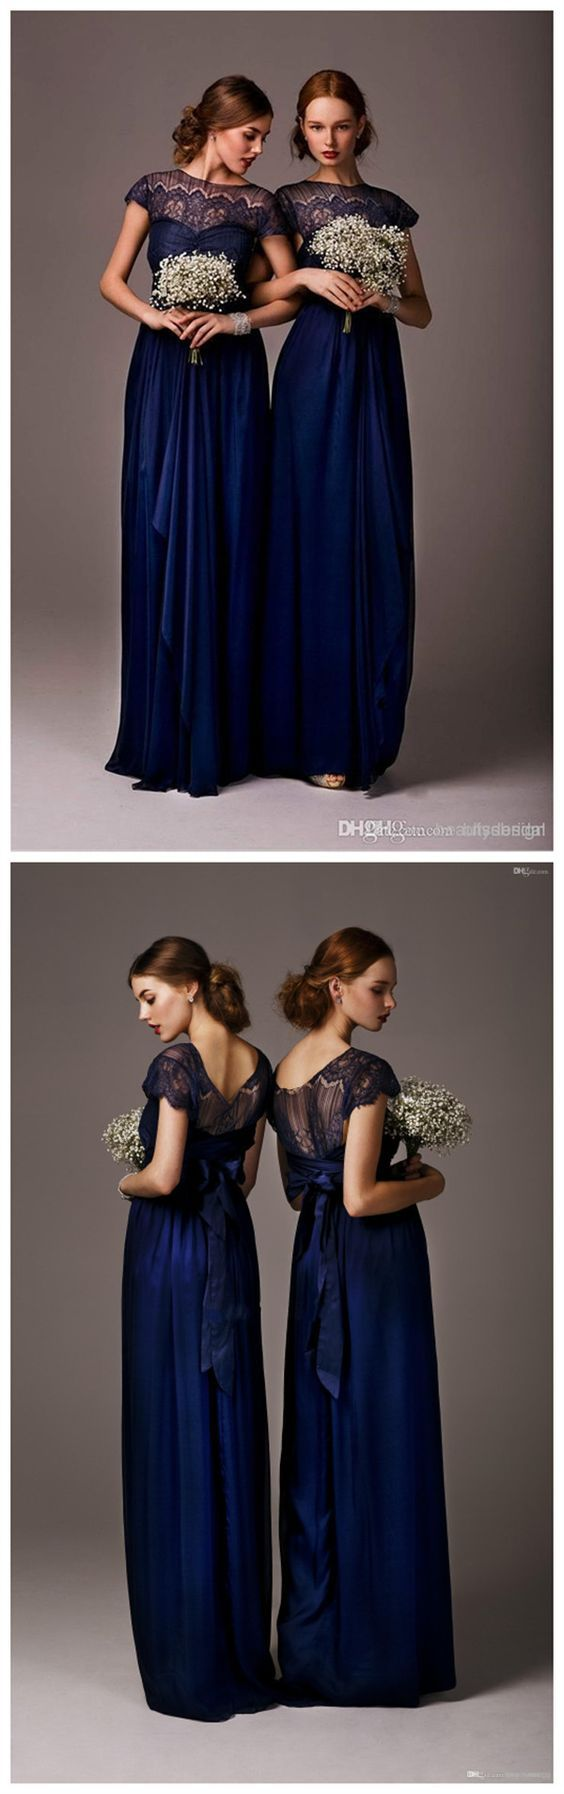 Short sleeve lace bridesmaid dresses navy bridesmaid dresses